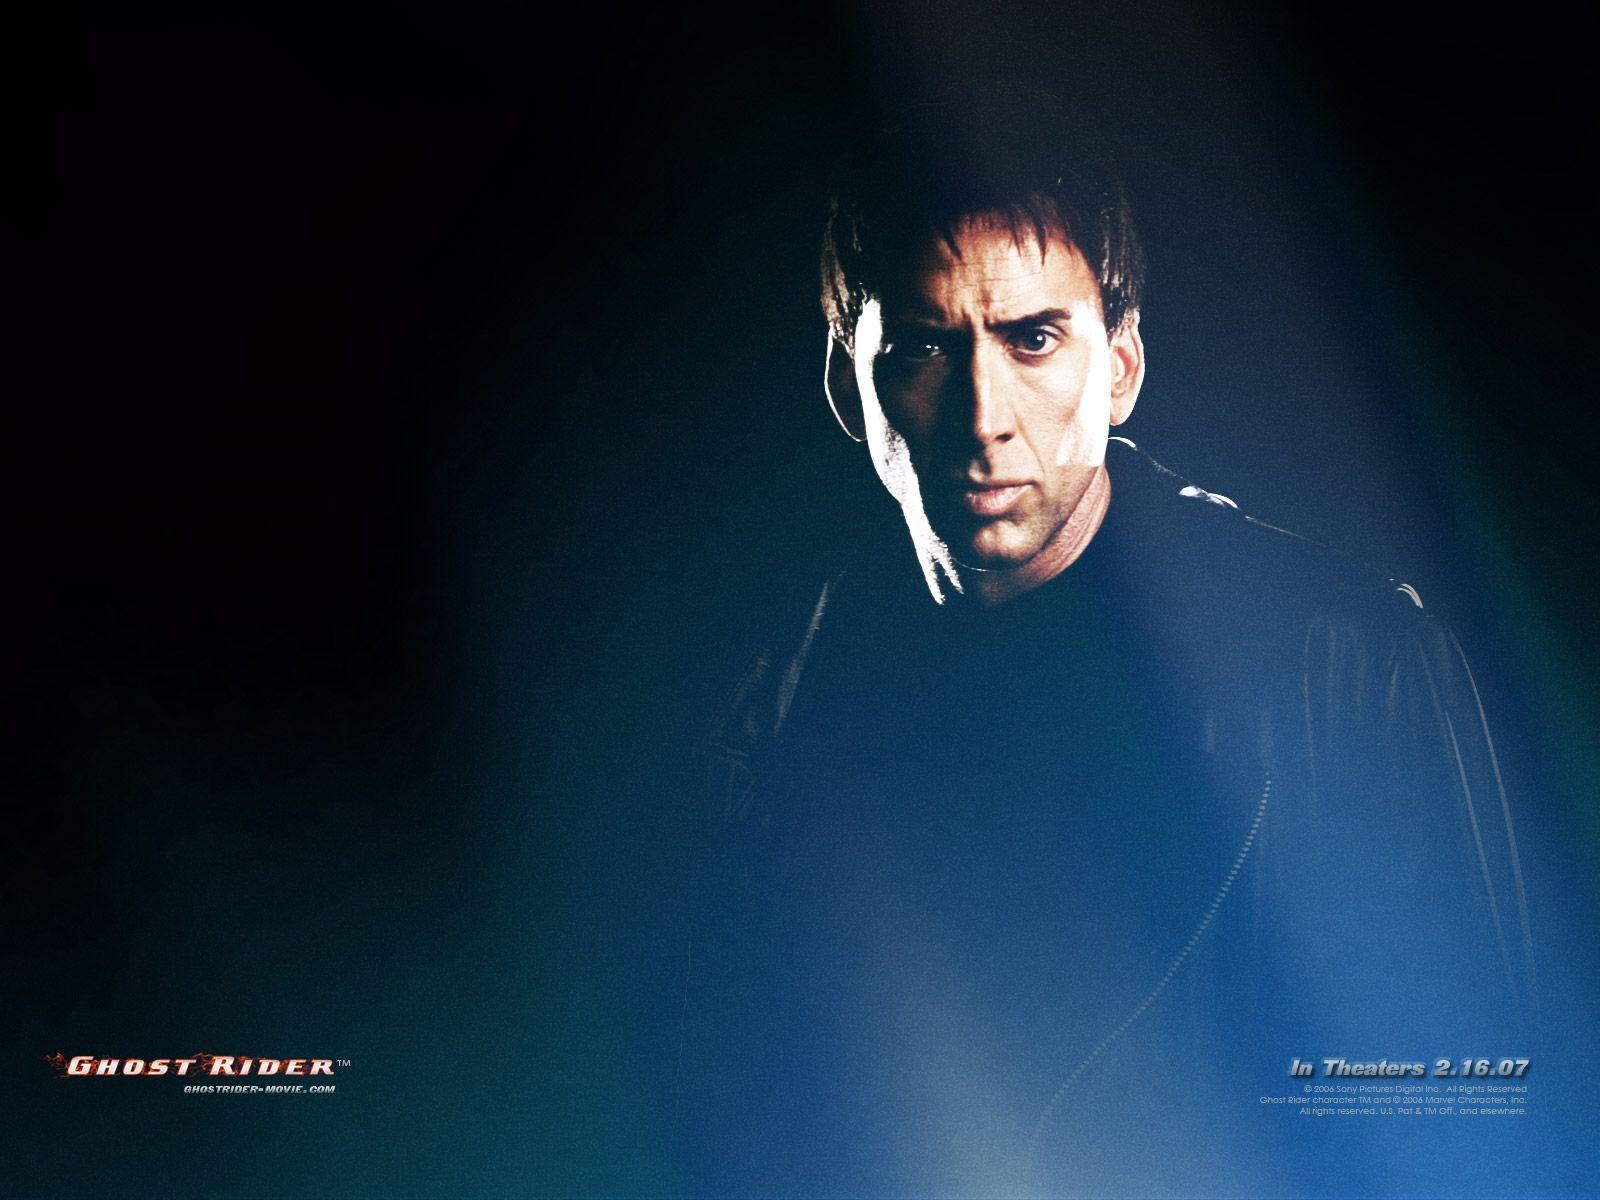 Nicolas cage meme wallpaper